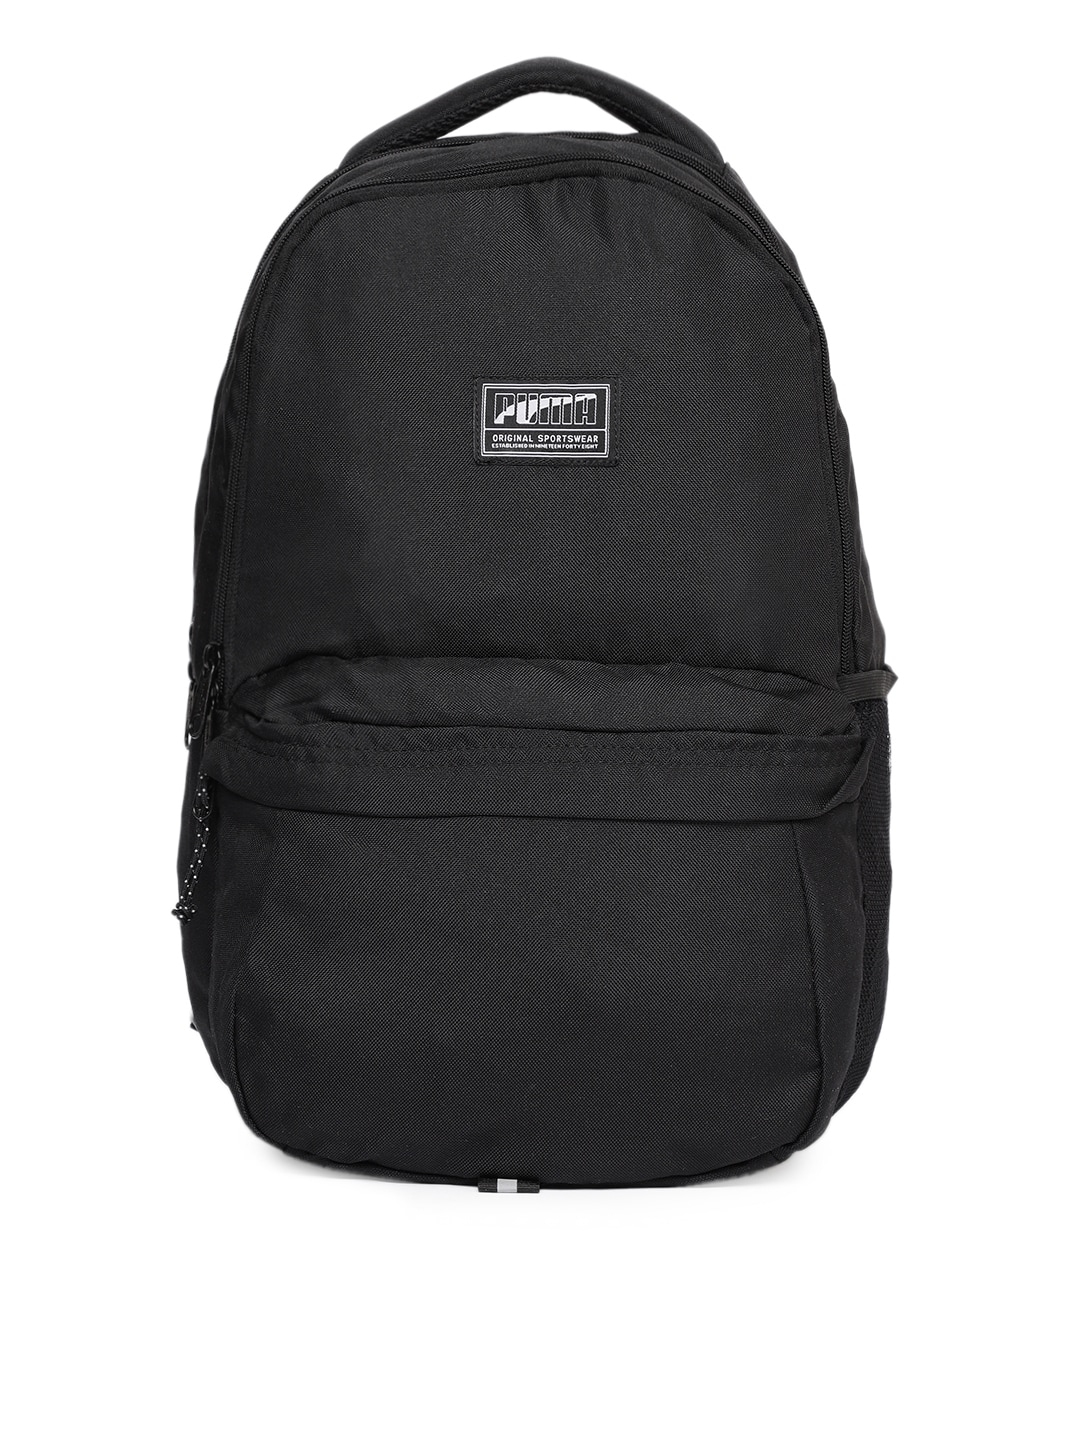 79add9514907 Domyos Backpacks - Buy Domyos Backpacks Online in India